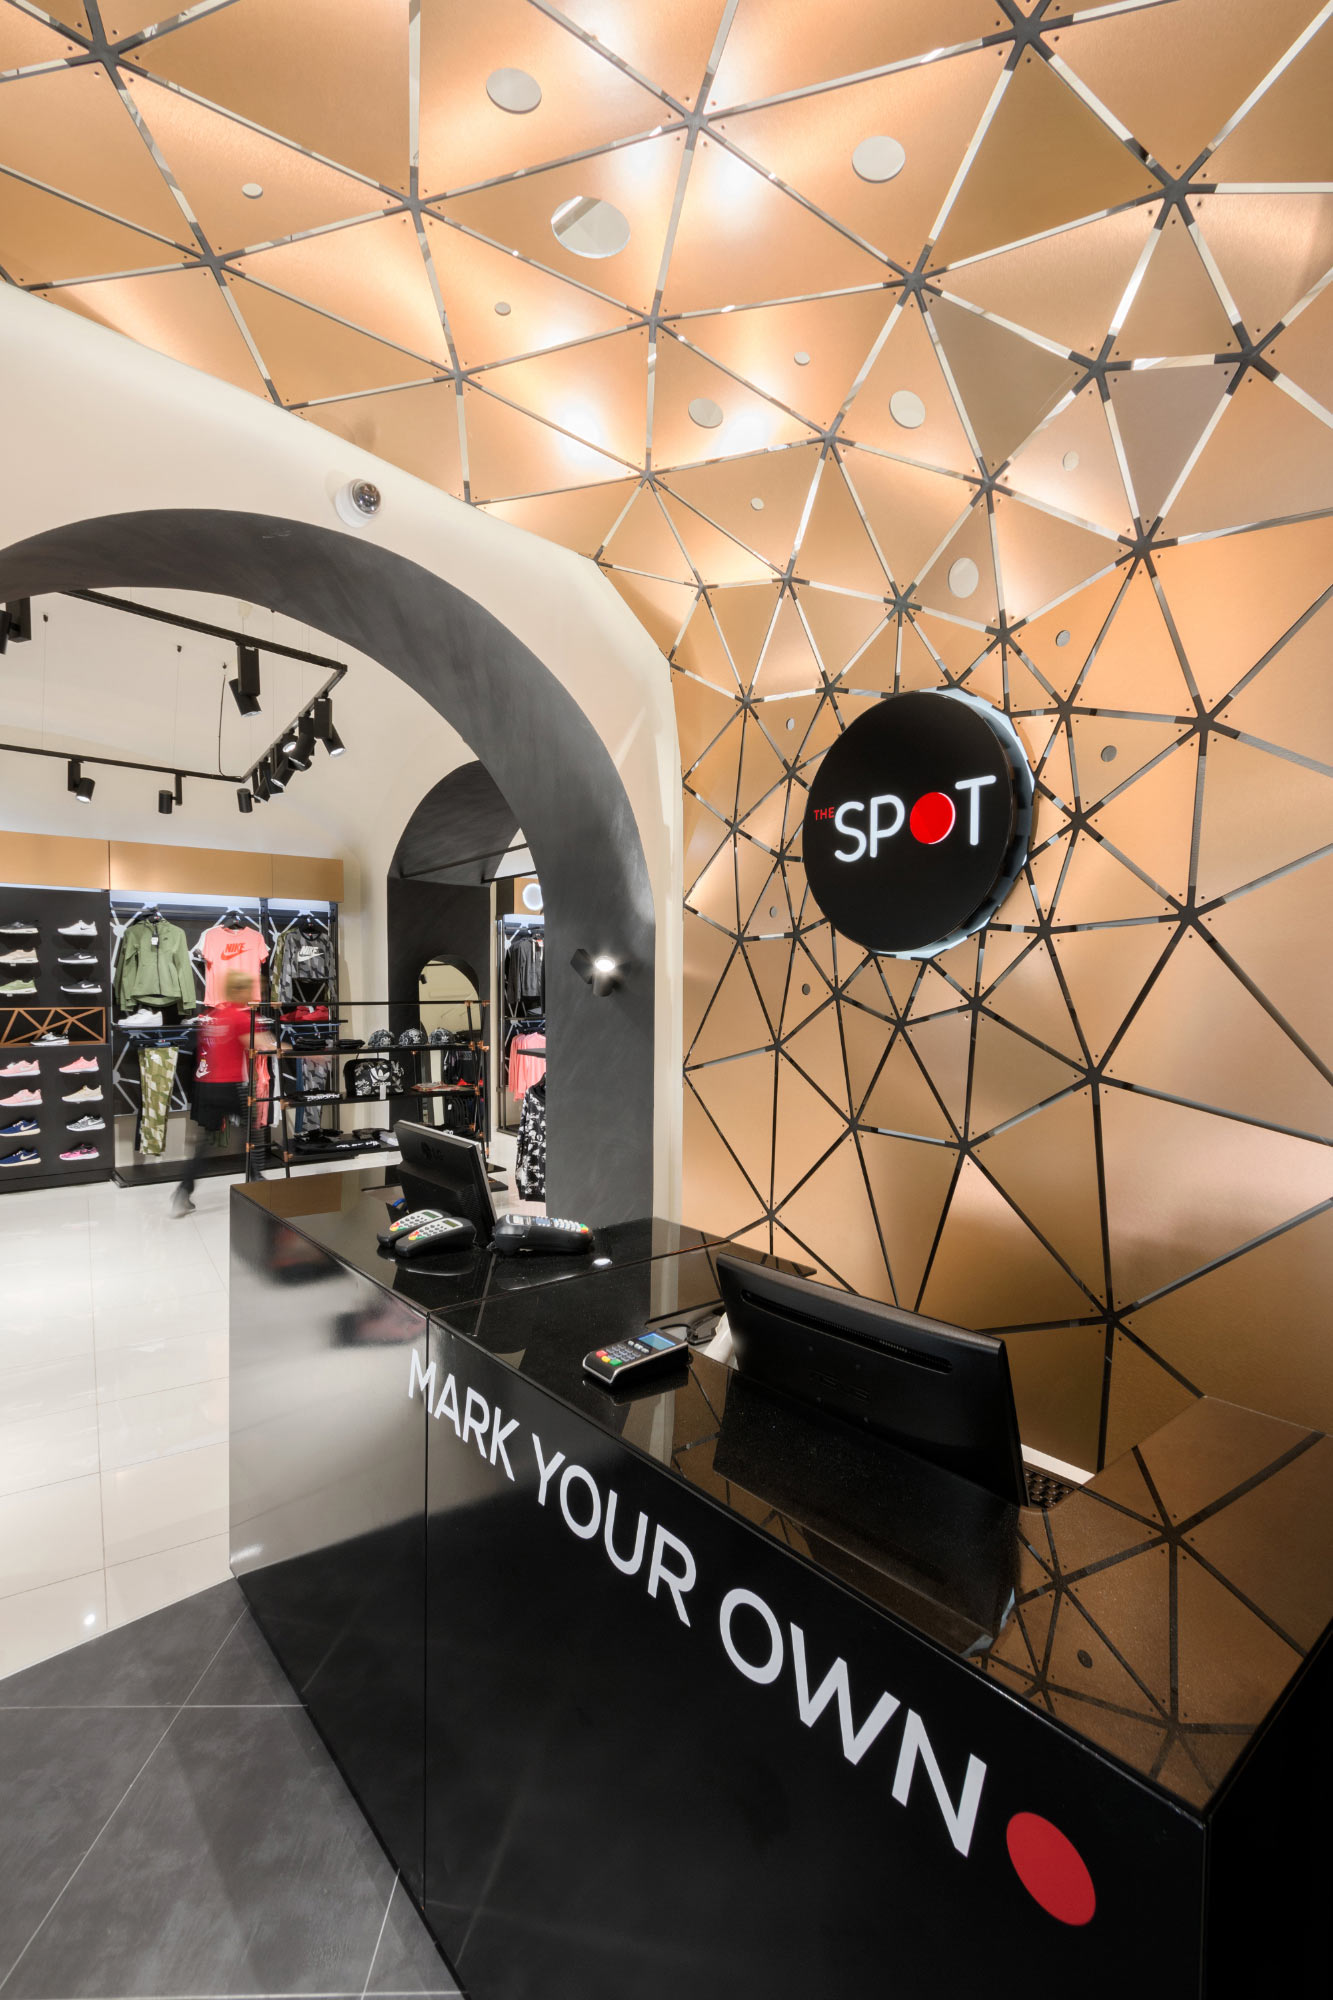 parametric design for Spot retail store